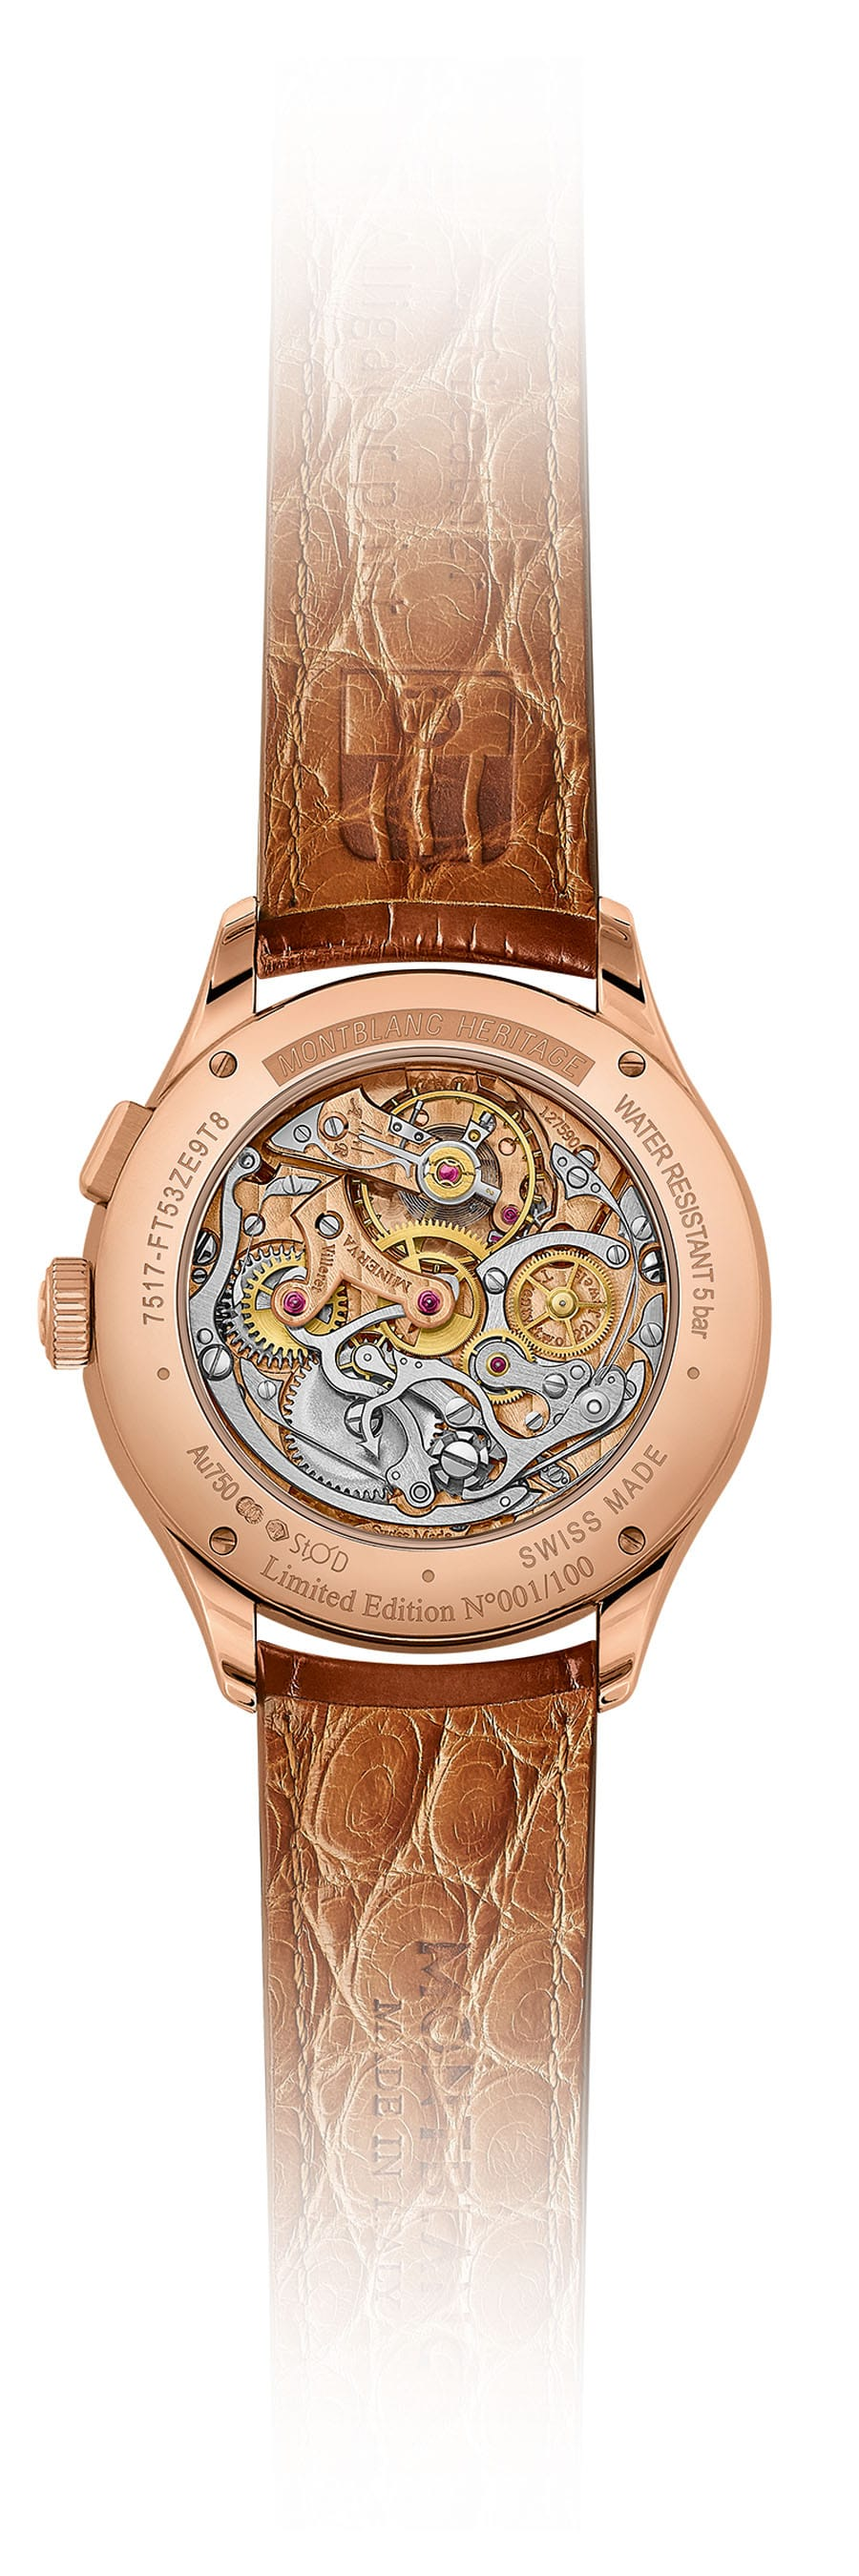 Rückseite des Montblanc Heritage Manufacture Pulsograph Limited Edition 100 in Roségold